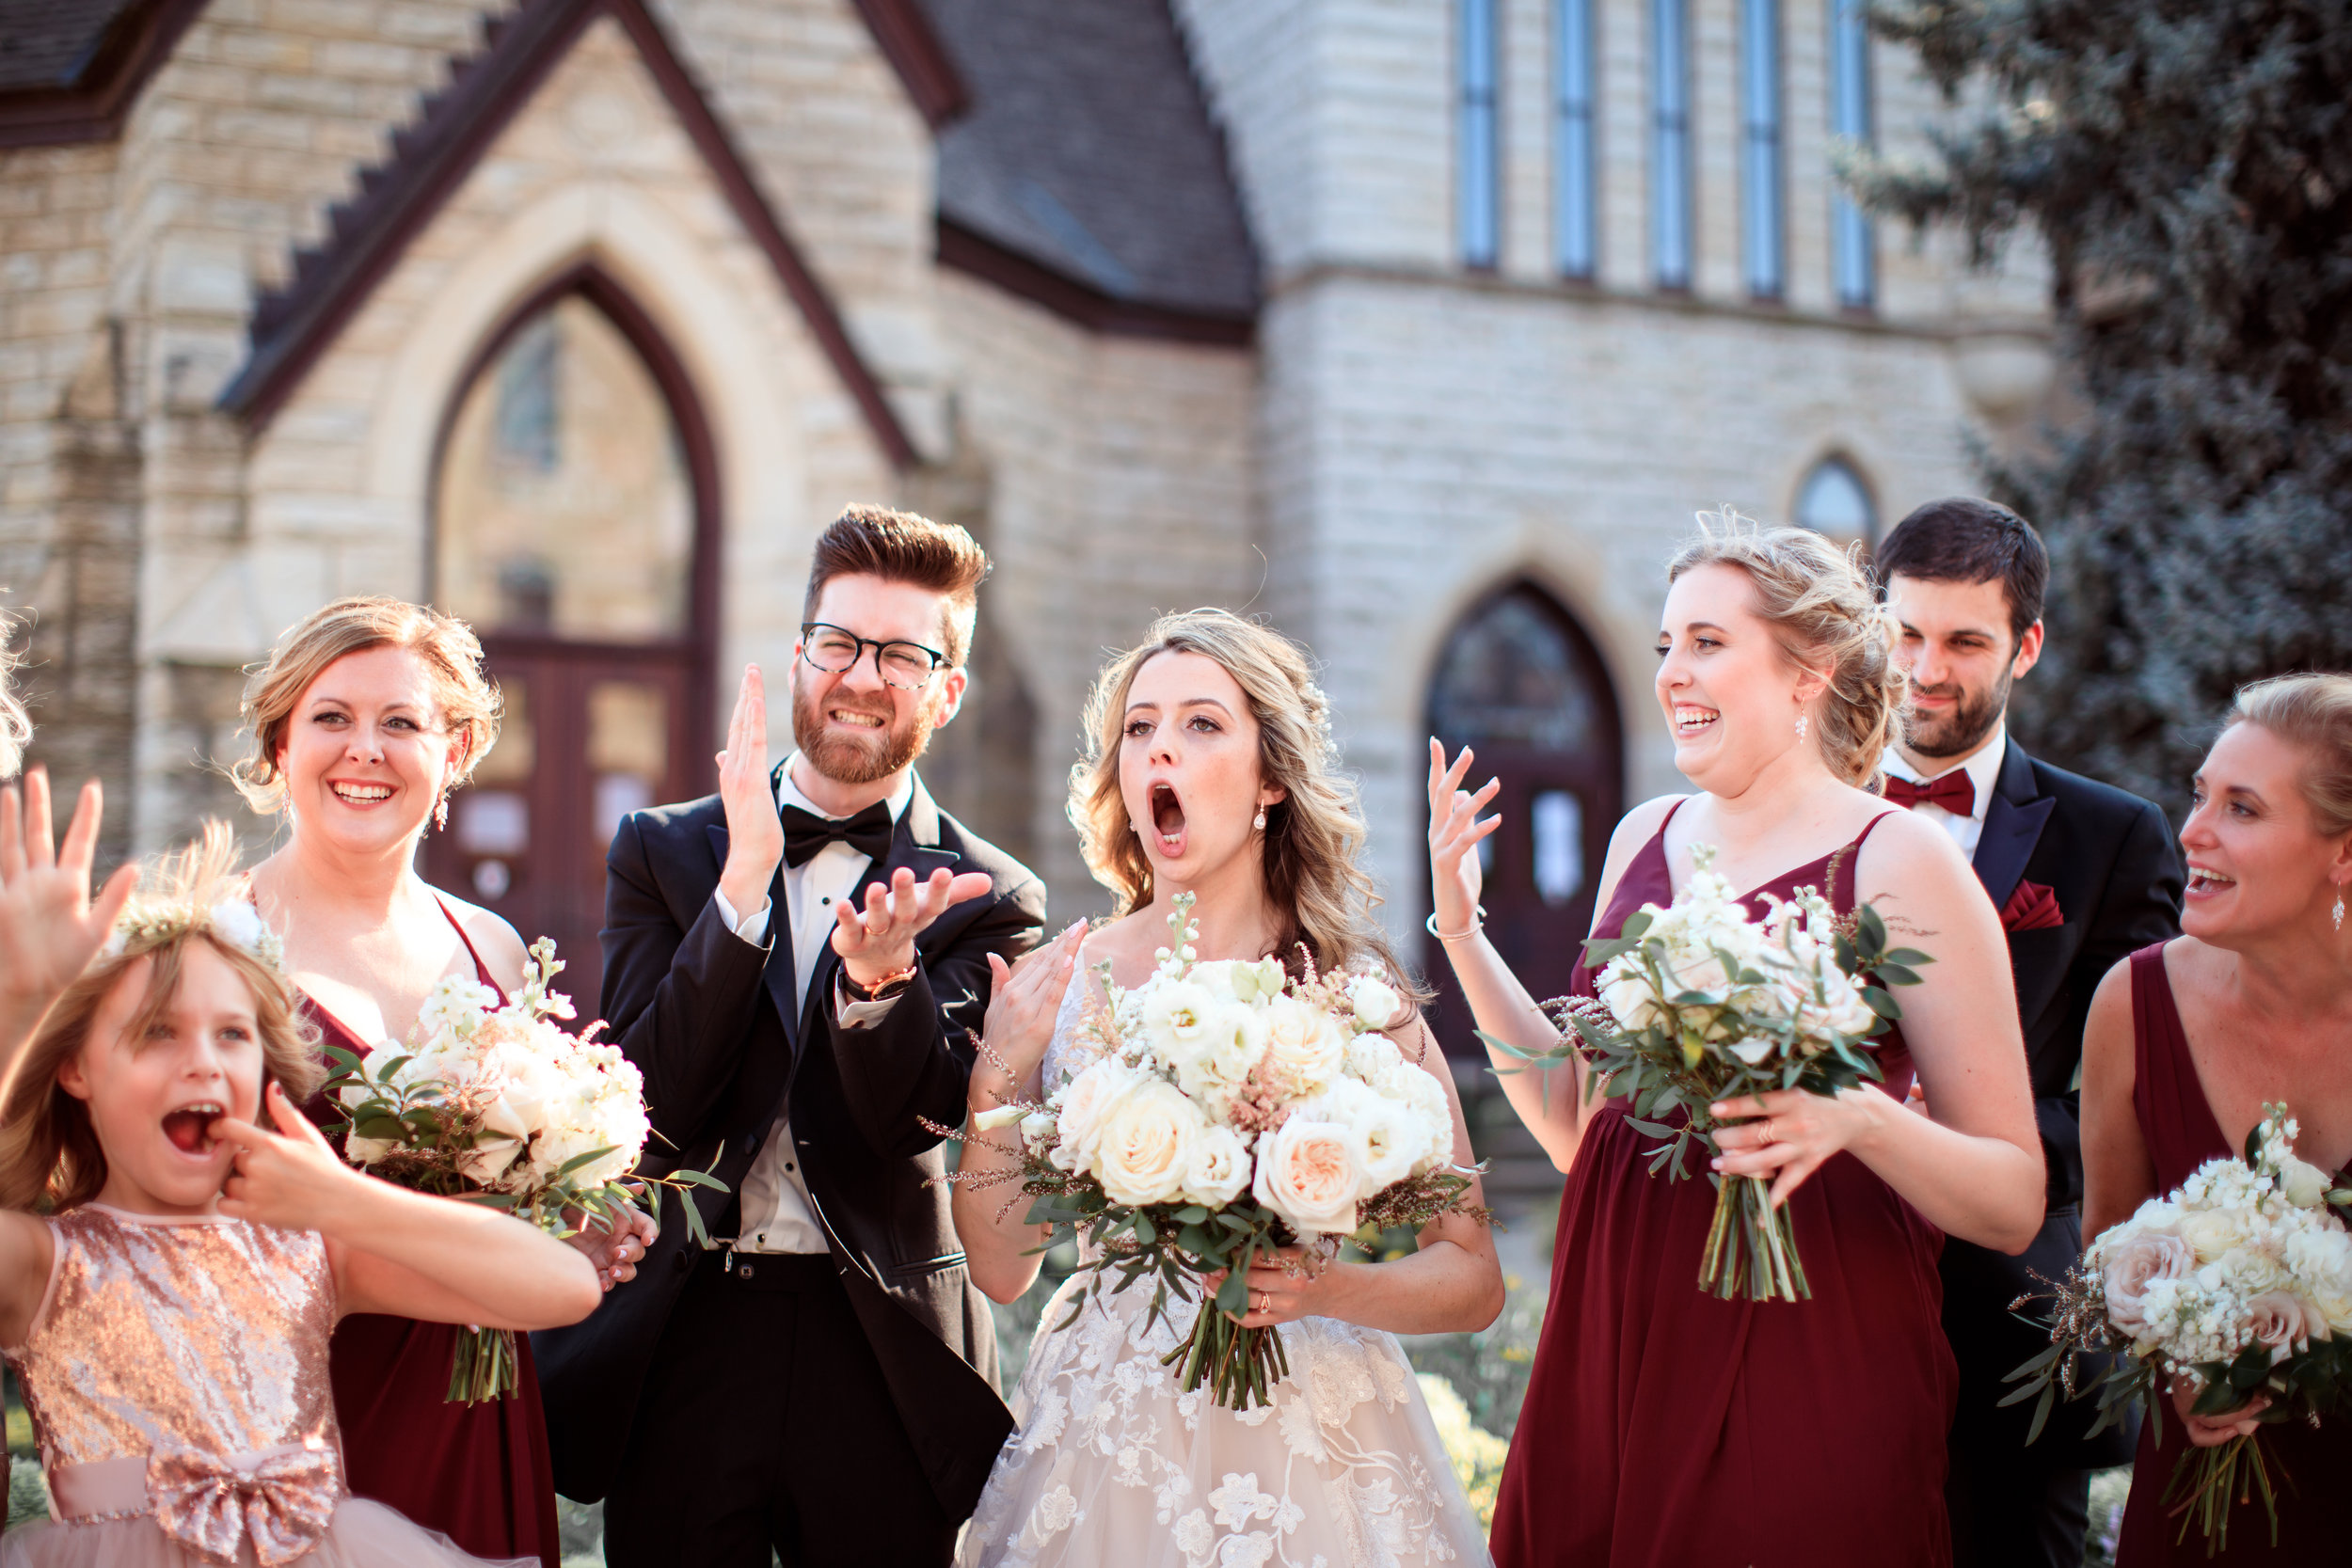 Hilarious-funny-bride-and-groom-take-wedding-photos-to-next-level48.jpg